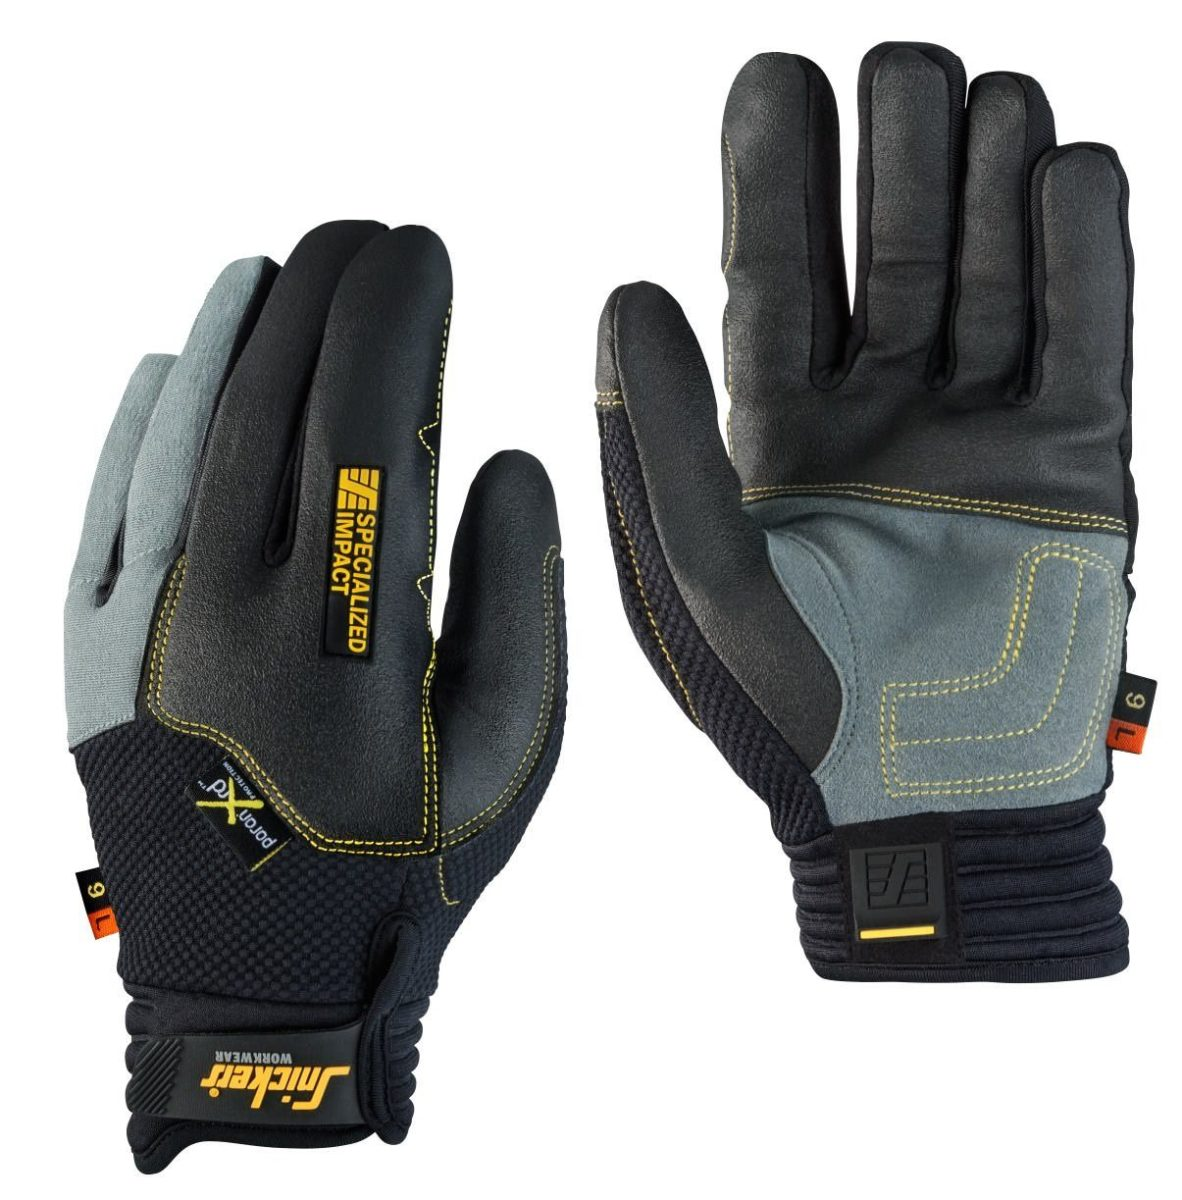 Snickers 9595 Specialised Impact Glove, Left (Single)